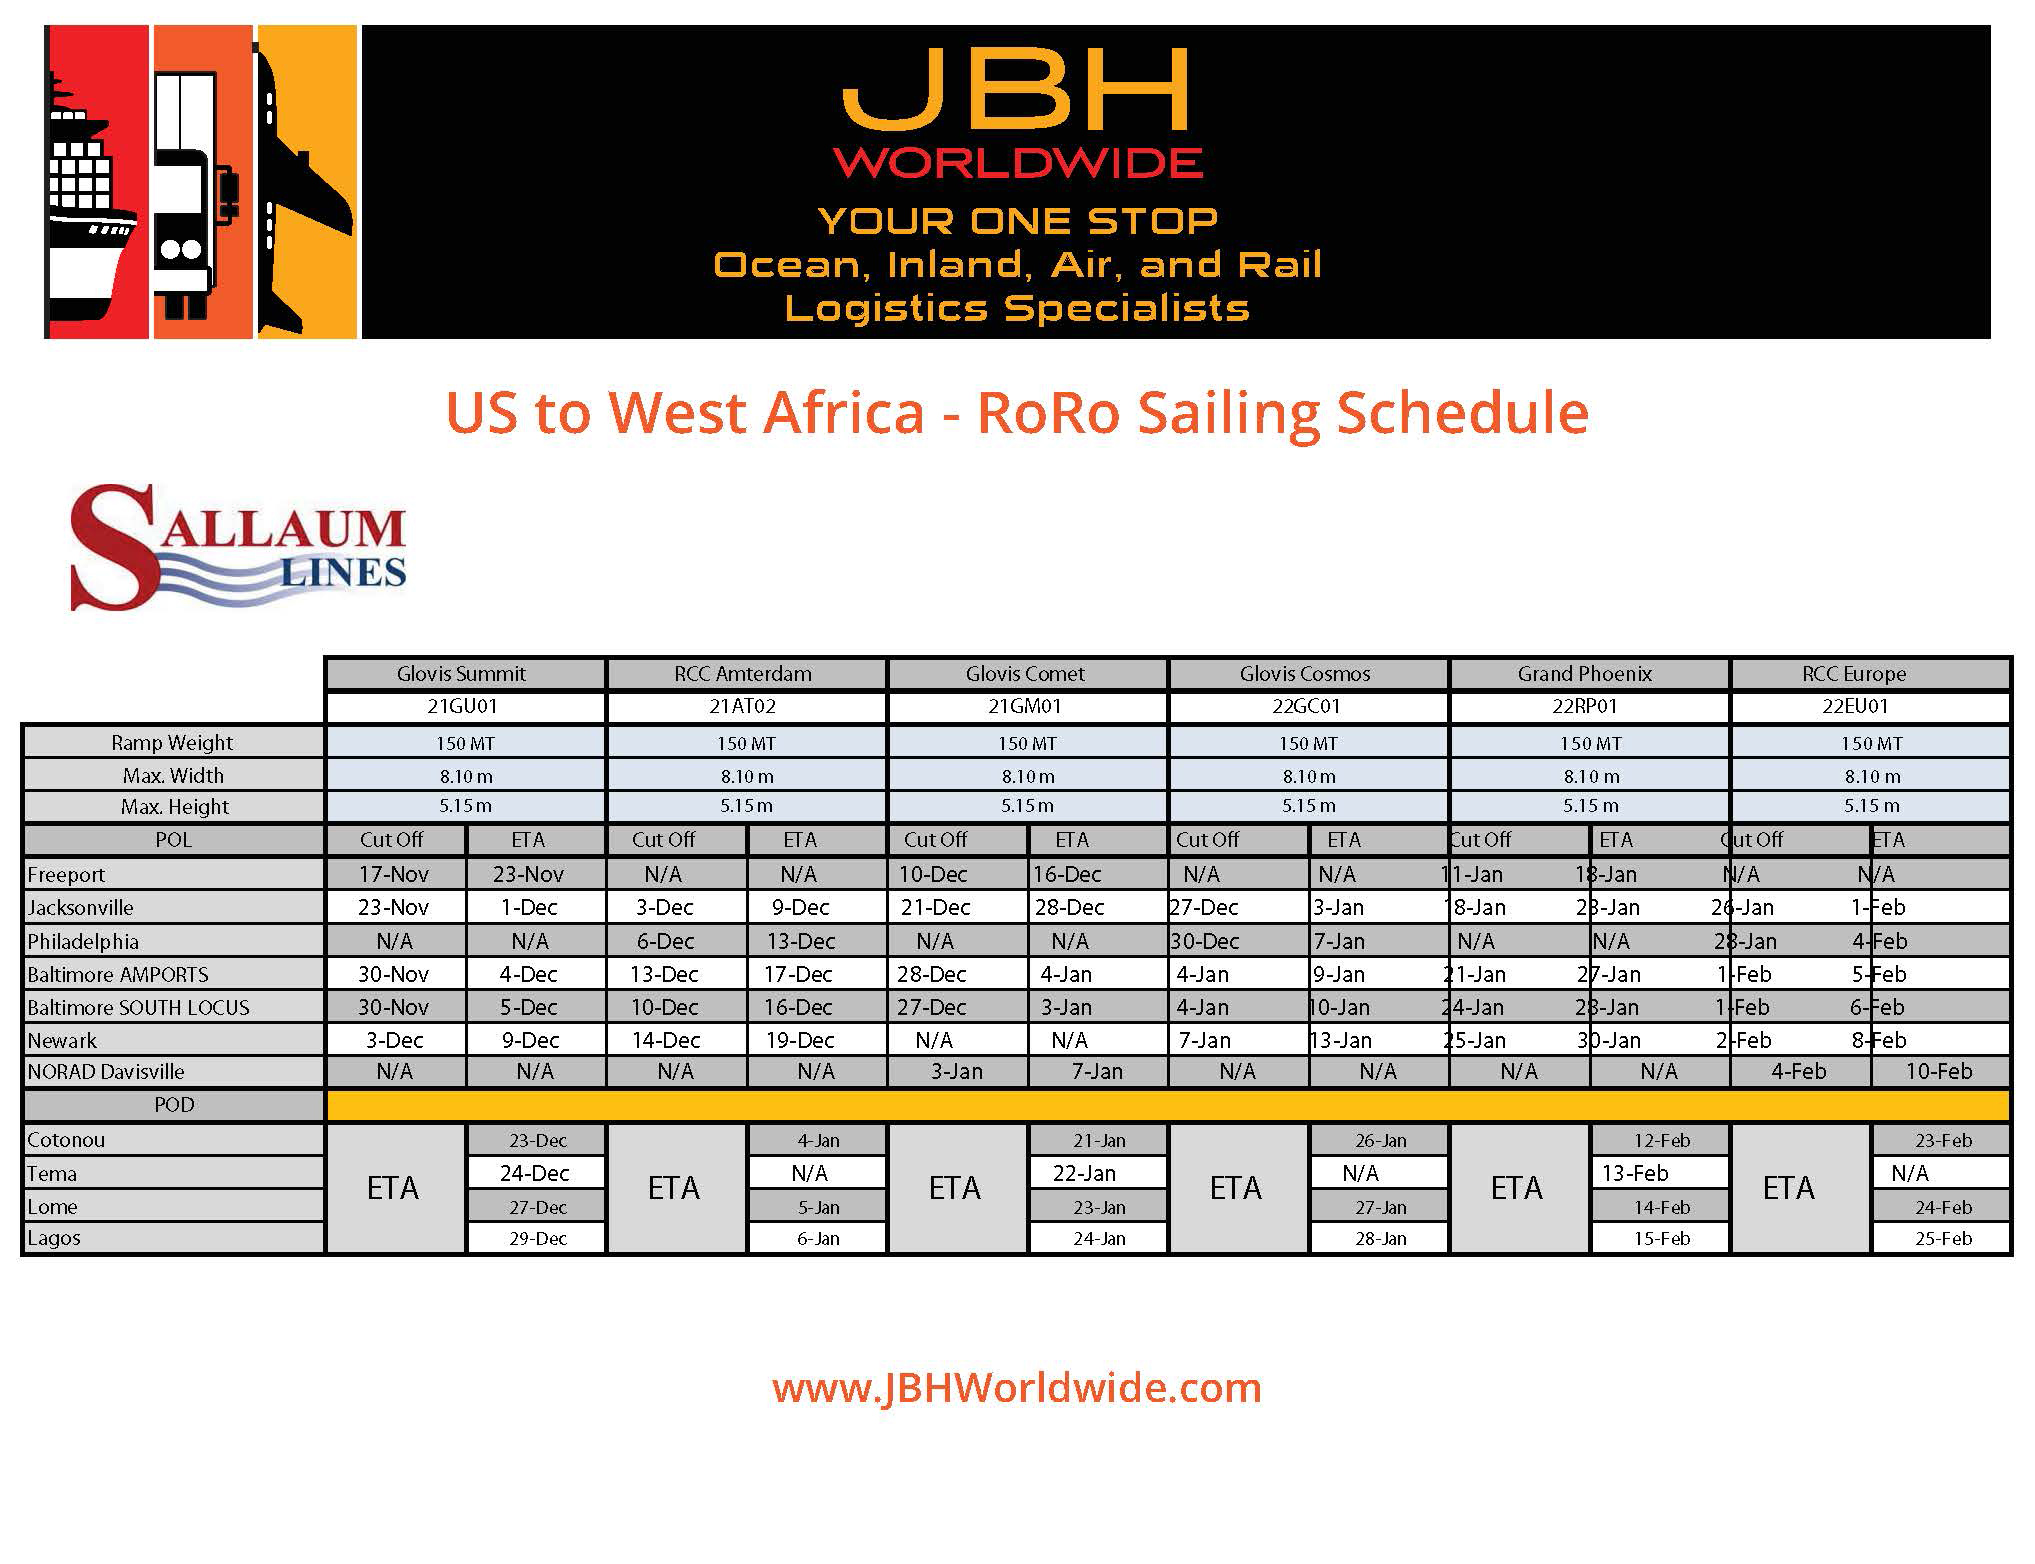 Roro Sailing Schedule